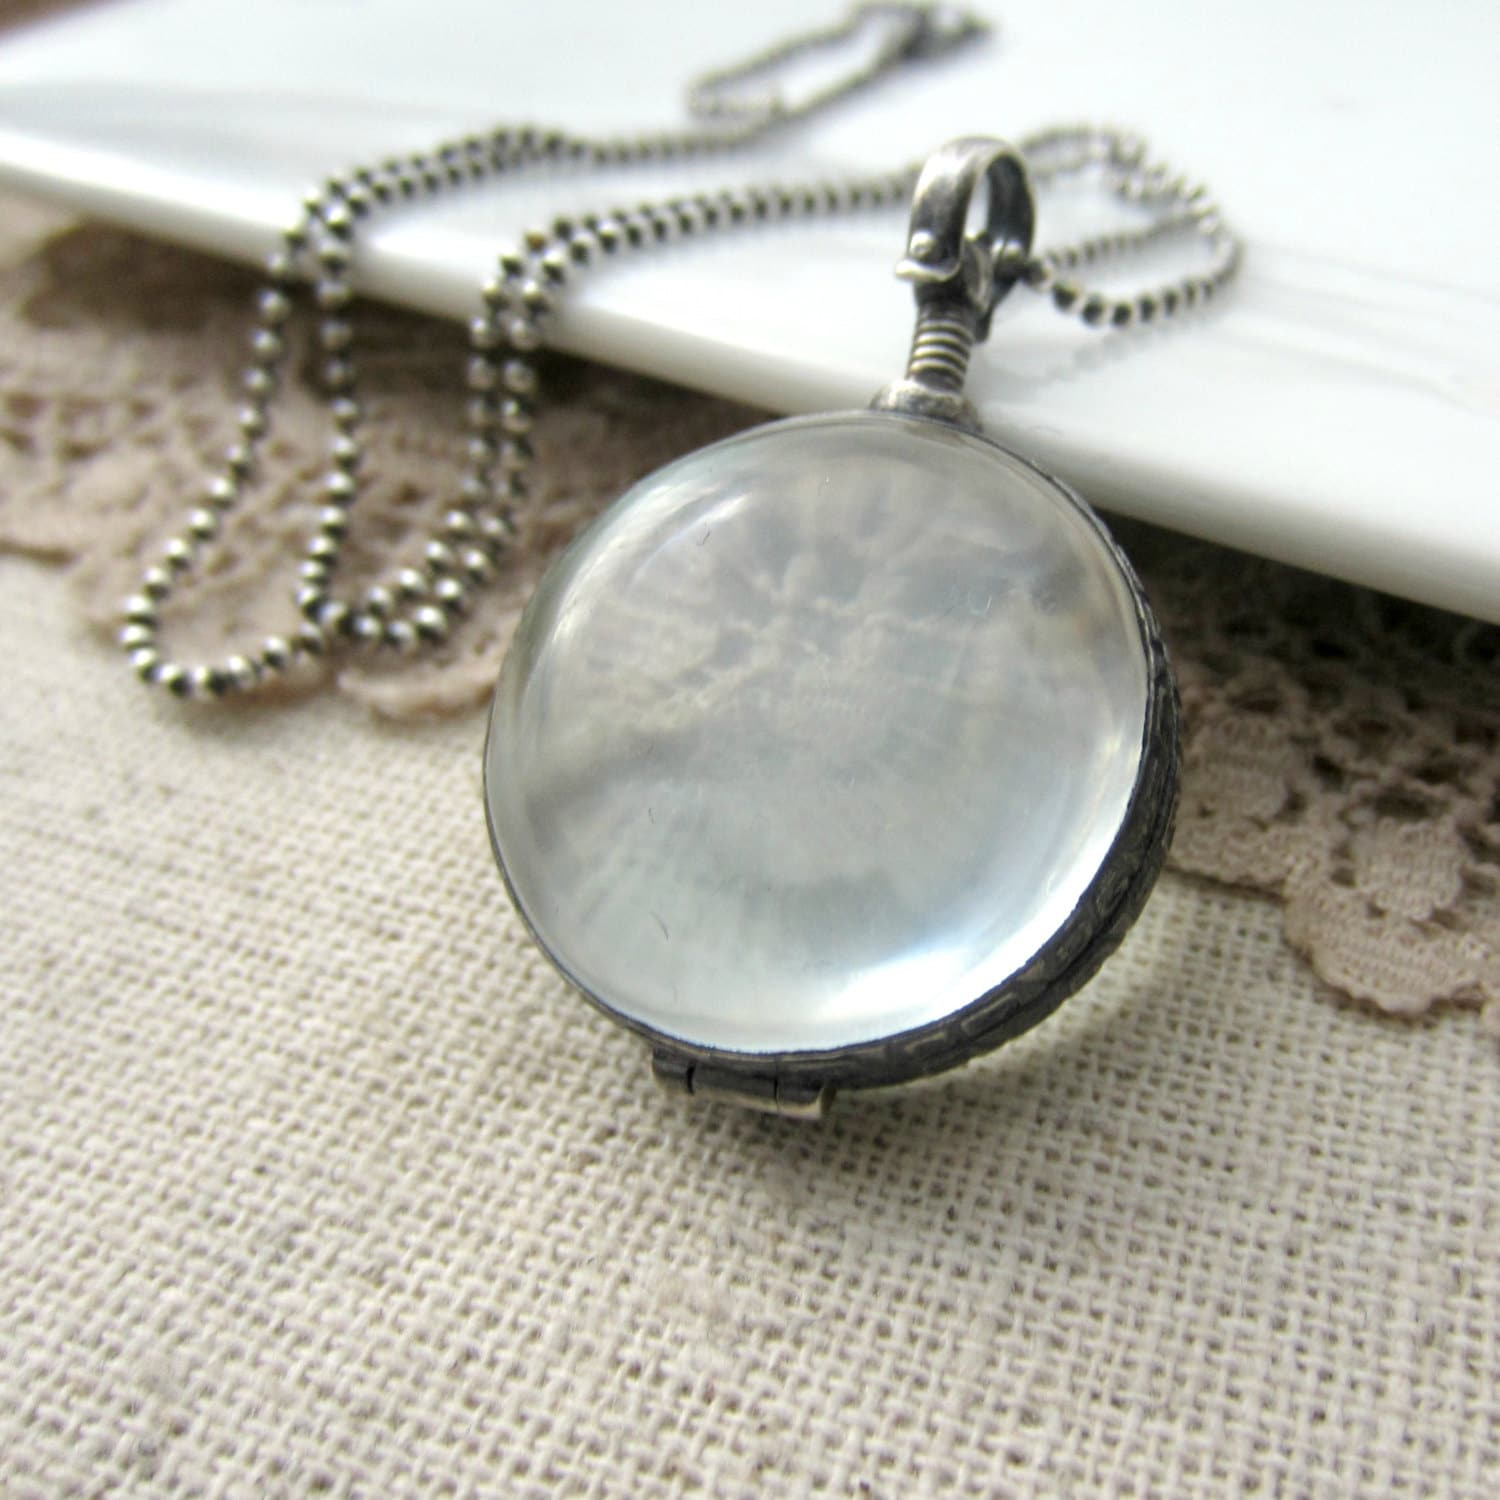 jewel bauble sized your photo and glass our petal delight a necklace to pressed bhldn locket neuf soixante clearly clear of hold lockets from tiny quarter open bling twists s pin beloved or